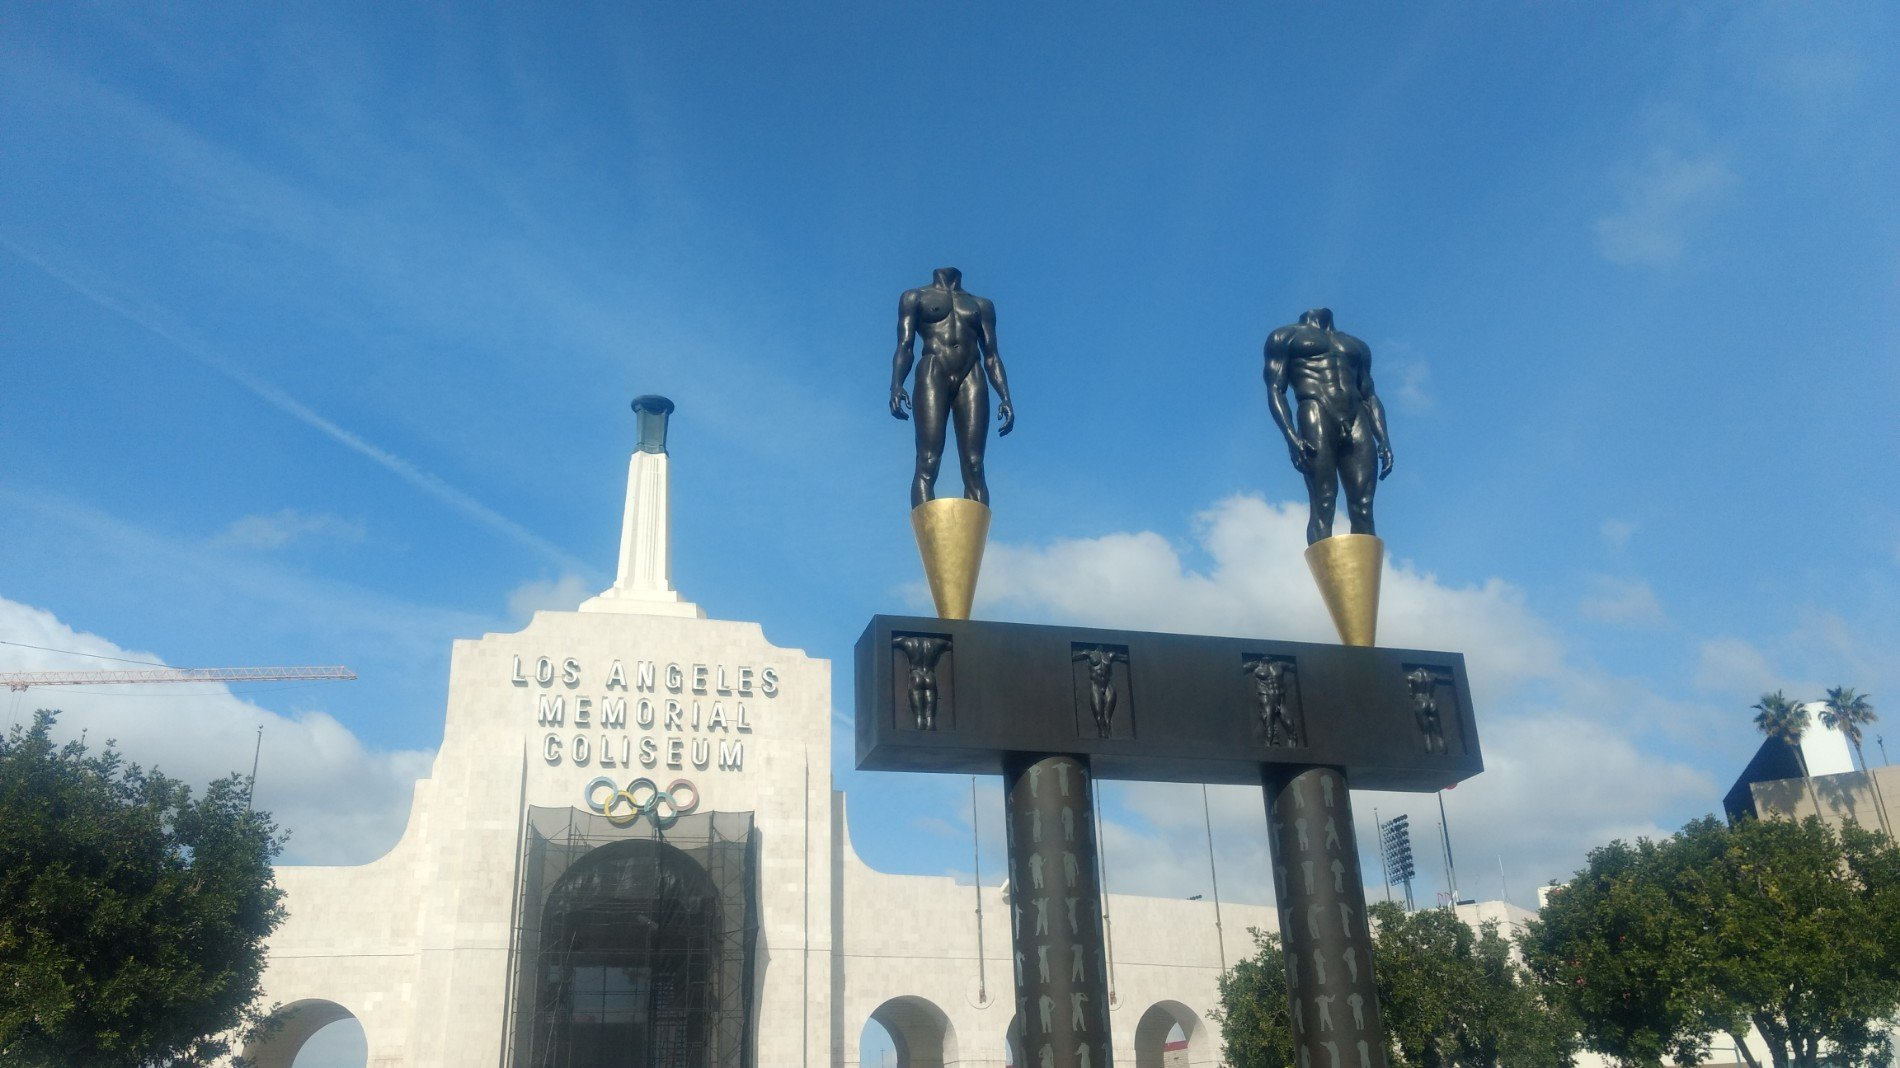 Checked in at Los Angeles Memorial Coliseum